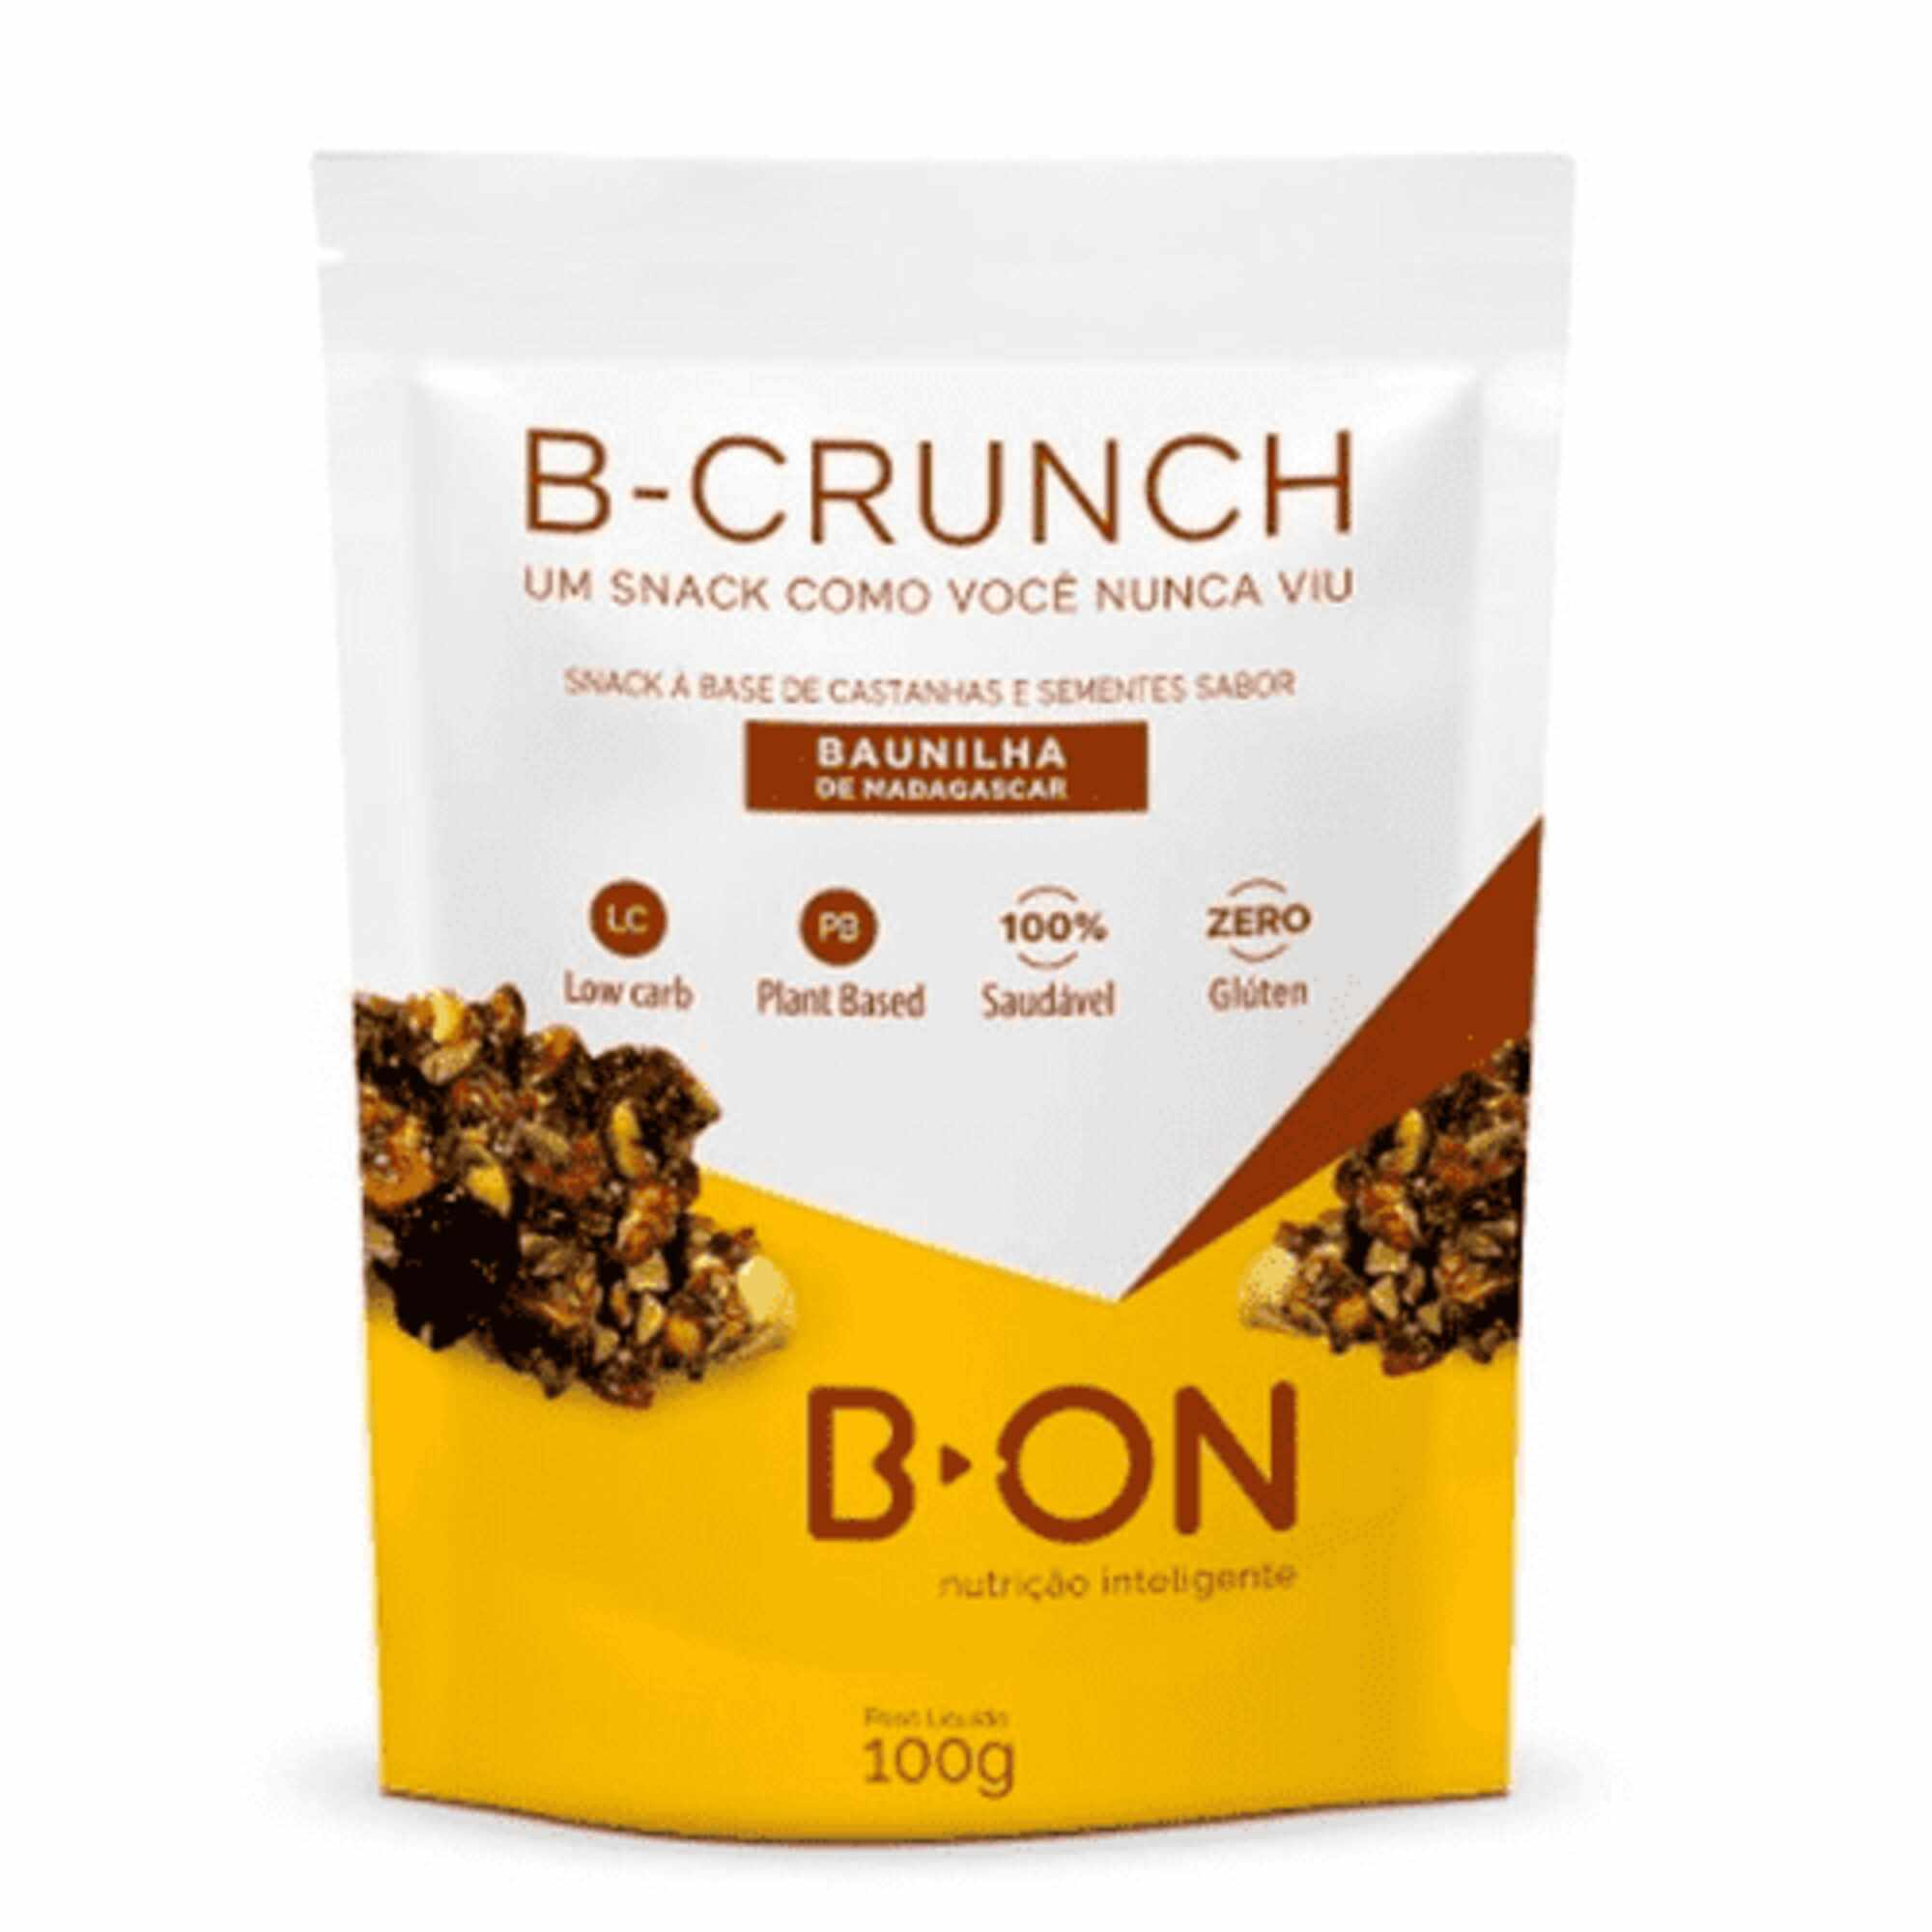 B-Crunch Baunilha Madagascar 100g B-On